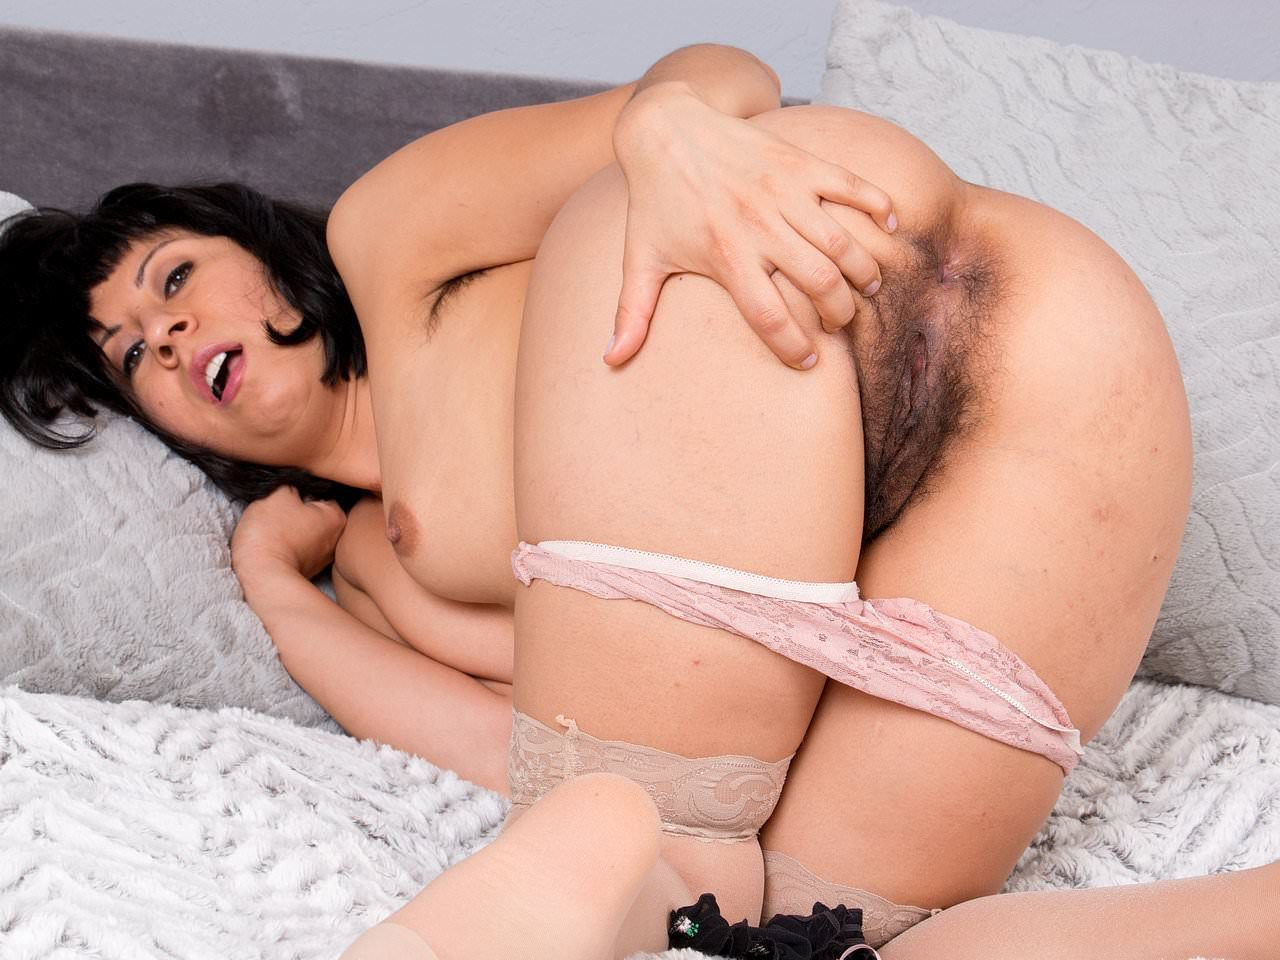 Something cunt american her milf hairy has vivi fun lots of with seems me